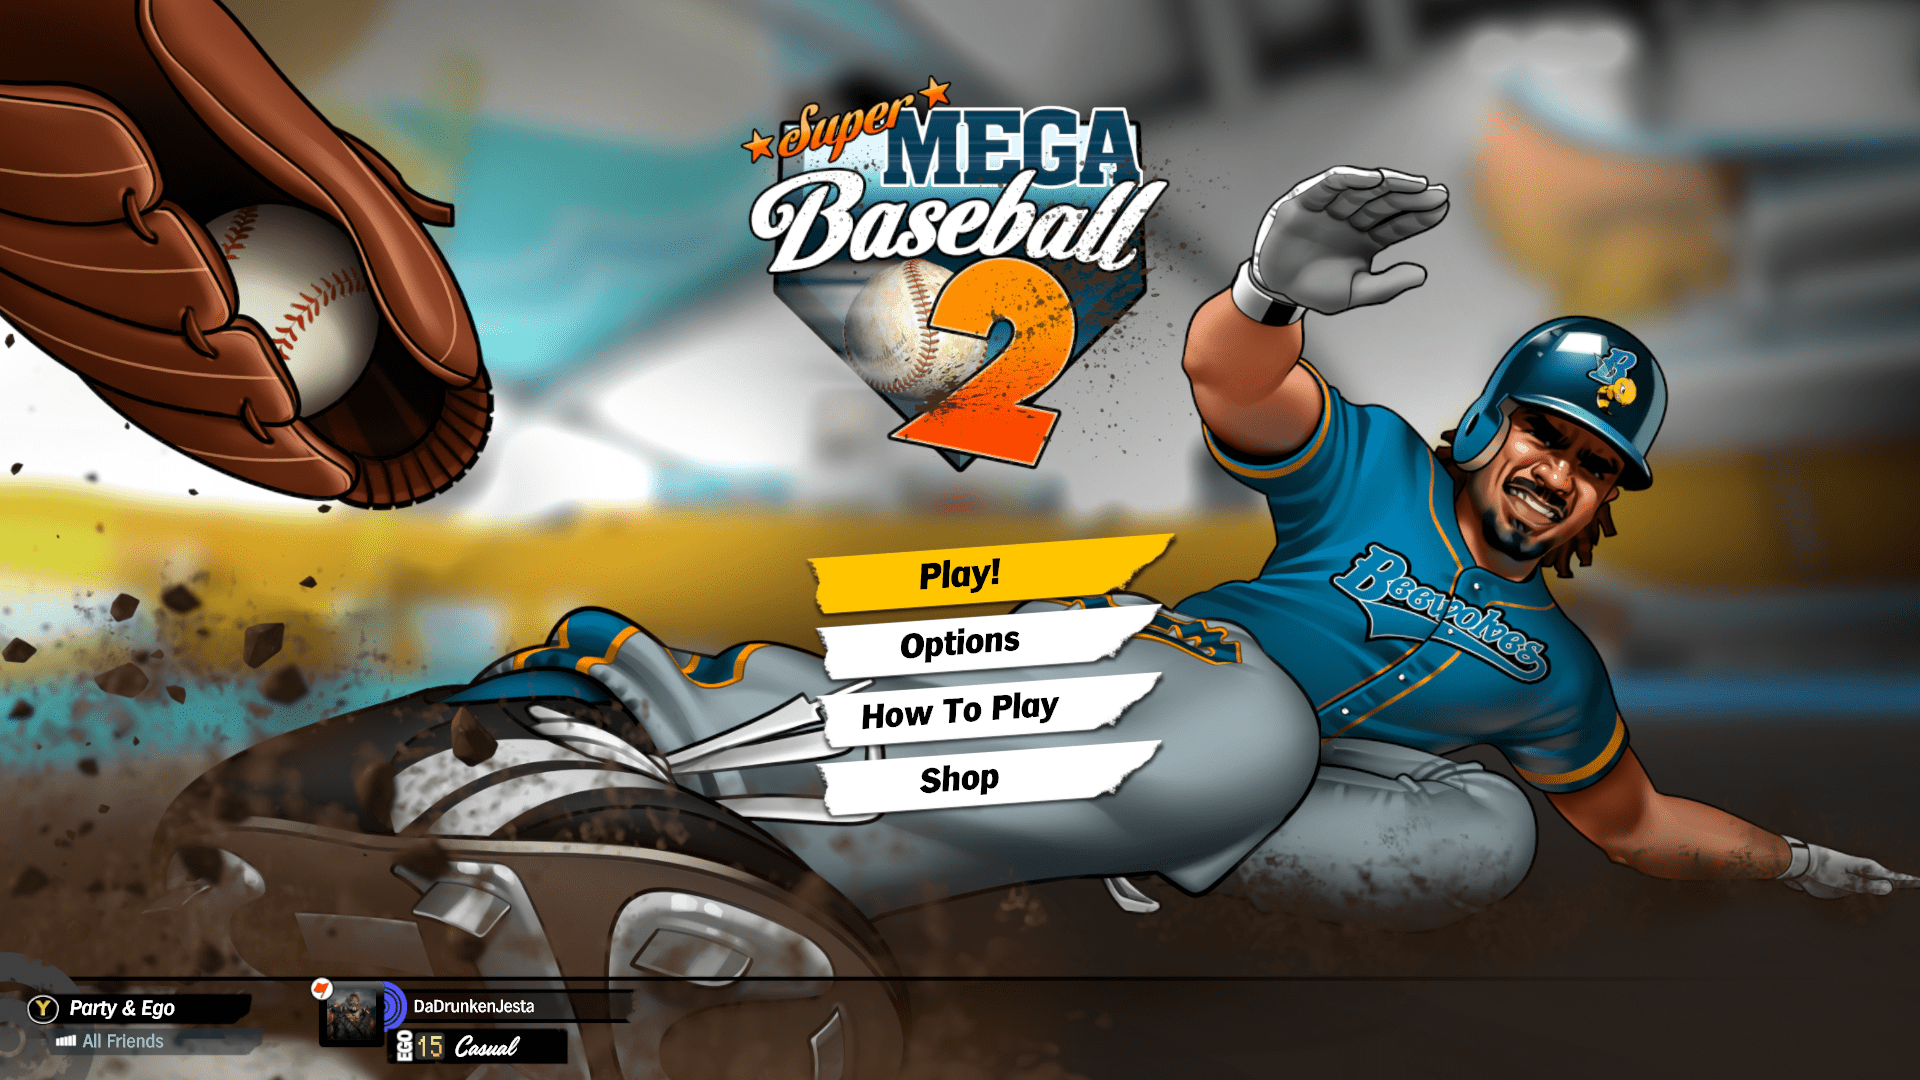 Review - Super Mega Baseball 2 (Xbox One)